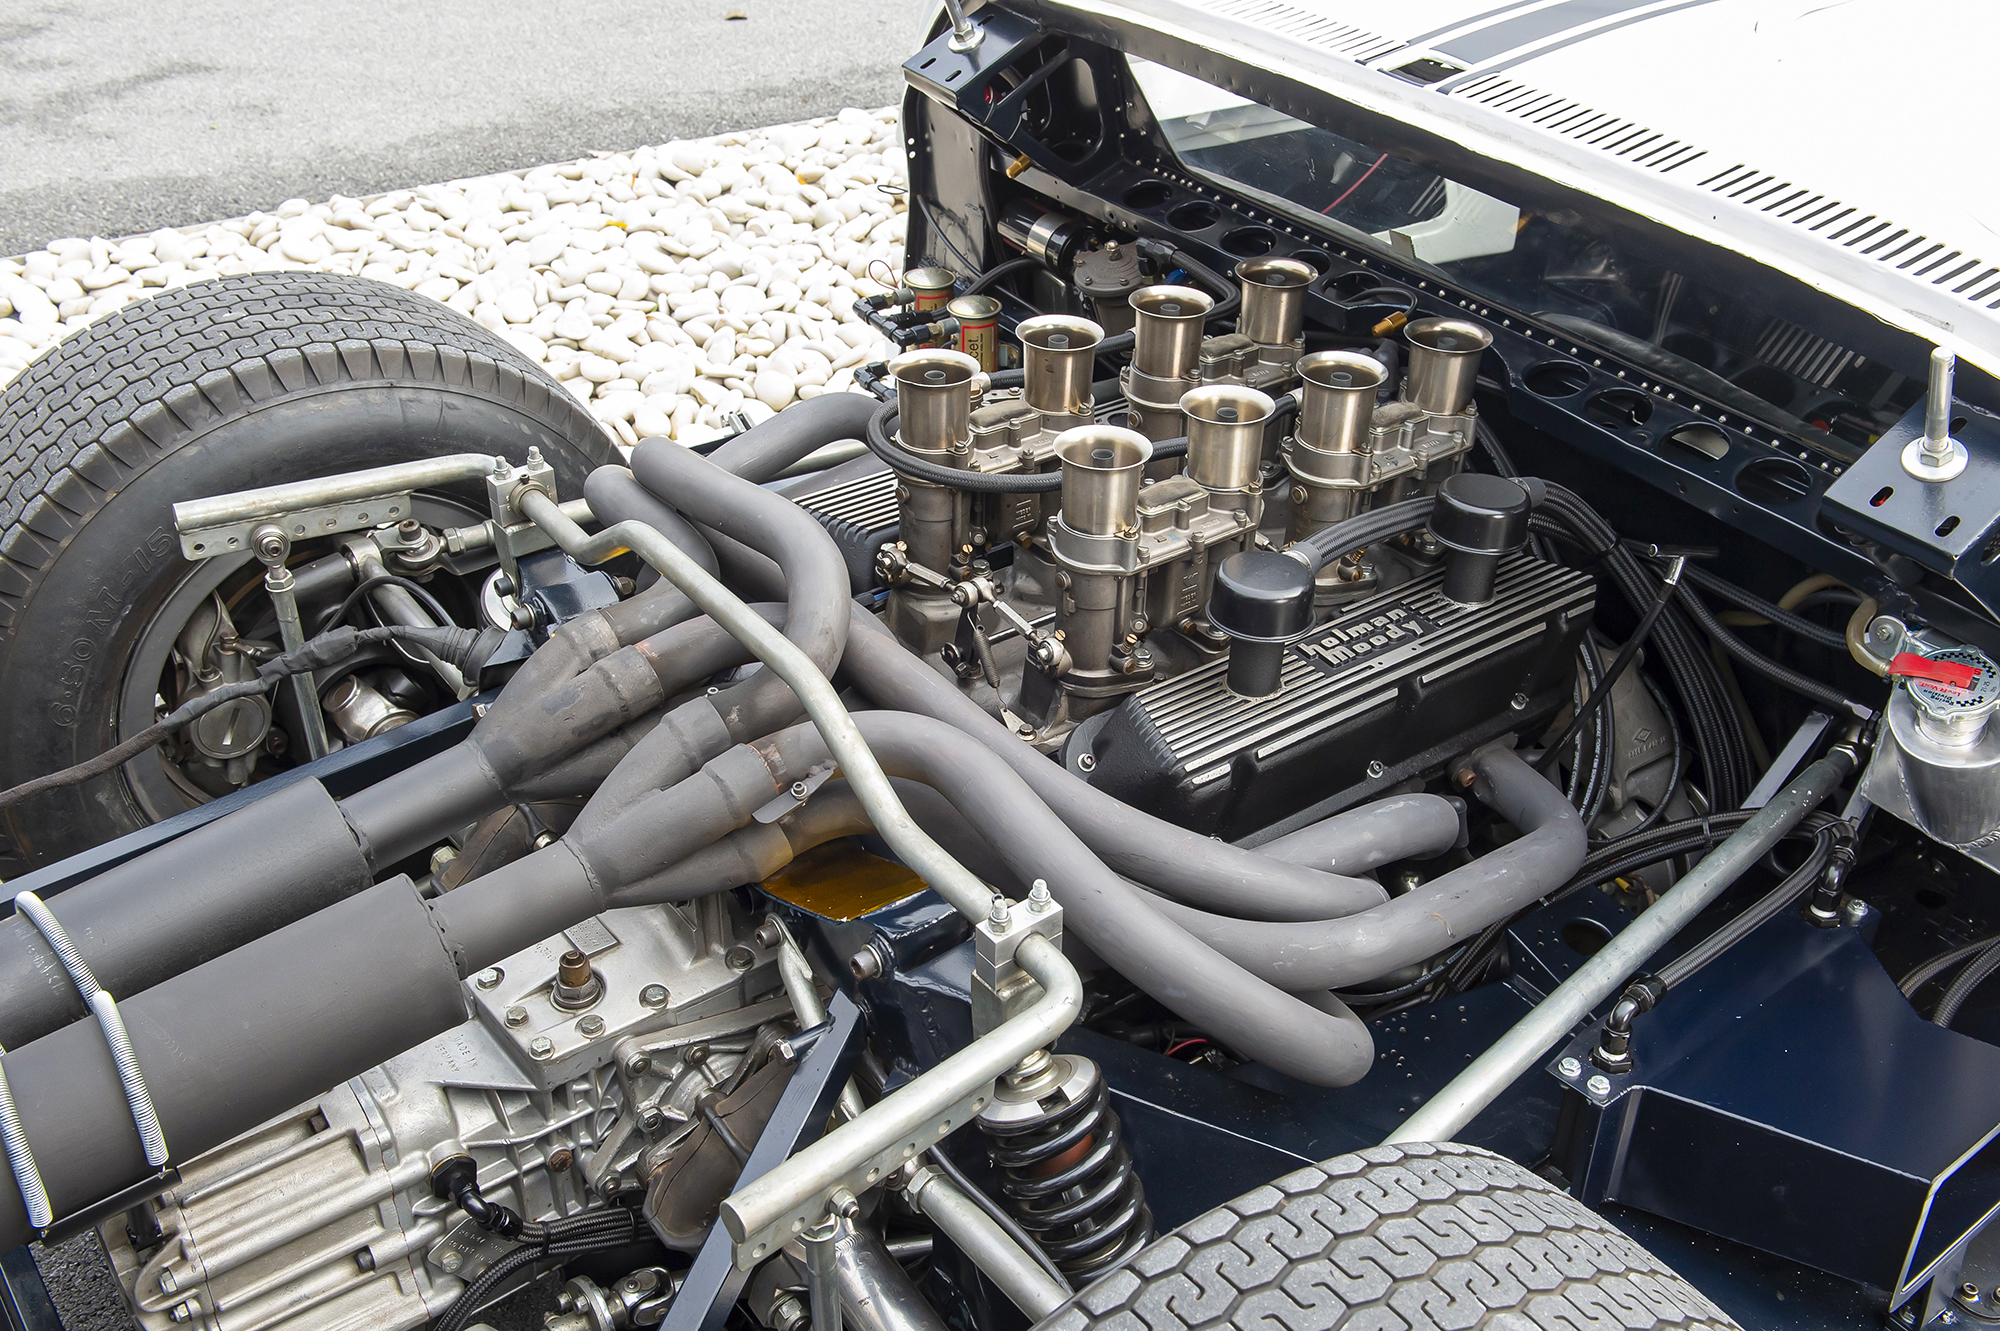 1964 Ford GT40 Prototype GT/105 engine